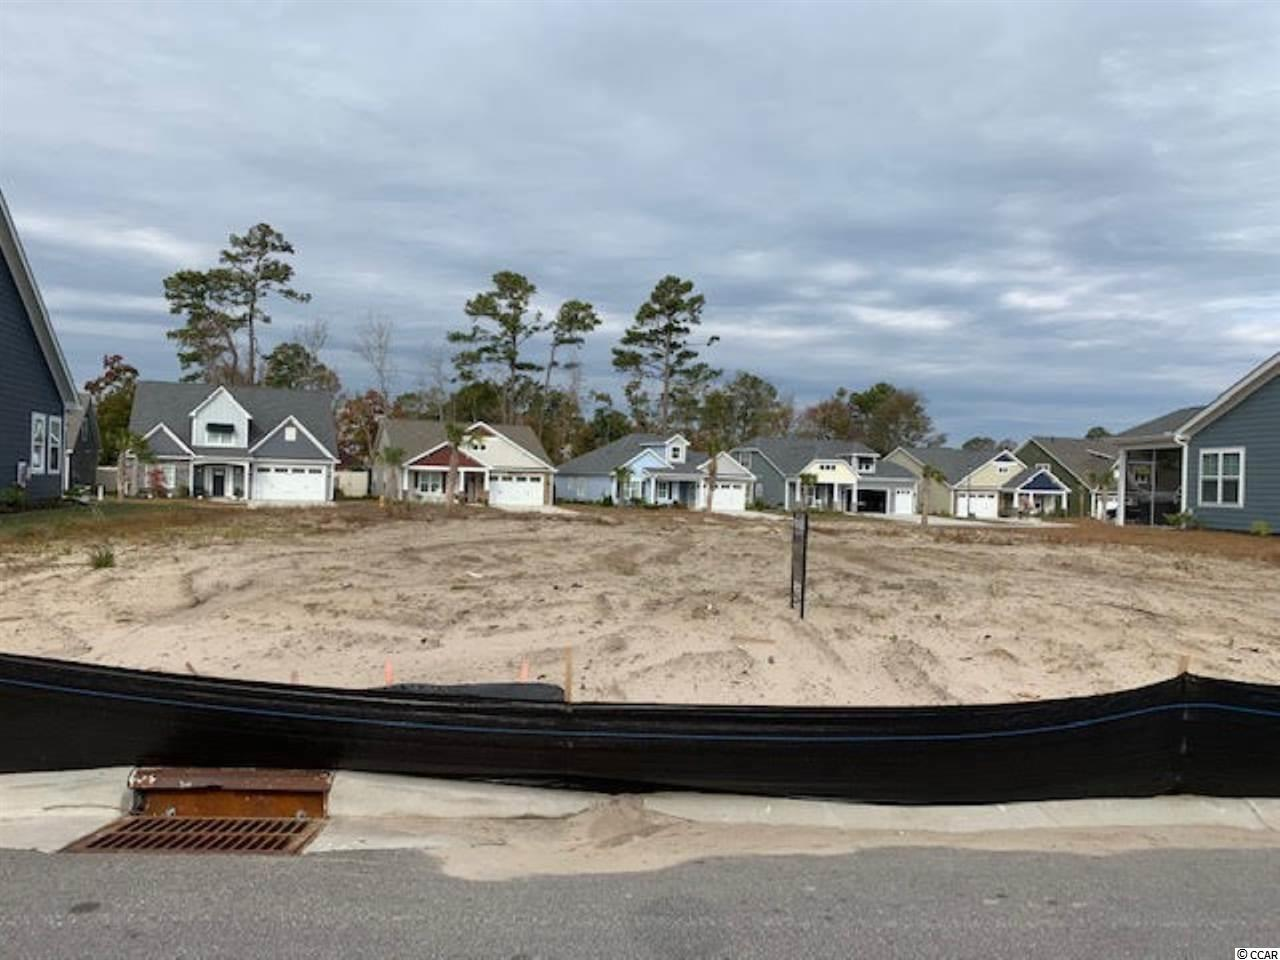 Don't Miss this great Lake lot in Robber's Roost!  Choose from one of our many floorplans and build your dream home!  Robber's Roost at North Myrtle Beach is a natural gas community east of Hwy 17 with a community pool coming for the 2020 swimming season & is located within walking, bicycle or golf cart distance to Tilghman Beach, the beautiful Atlantic Ocean w/ 60 miles of white sandy beaches and is close to Coastal North Town Center (shopping, dining, beauty, pets), Shag dance capital Main St., golf, boating/fishing in the ICW, entertainment and all the amenities of living in Coastal South Carolina. Whether a primary residence or your vacation get-a-way, Don't Miss ~ come live the dream!